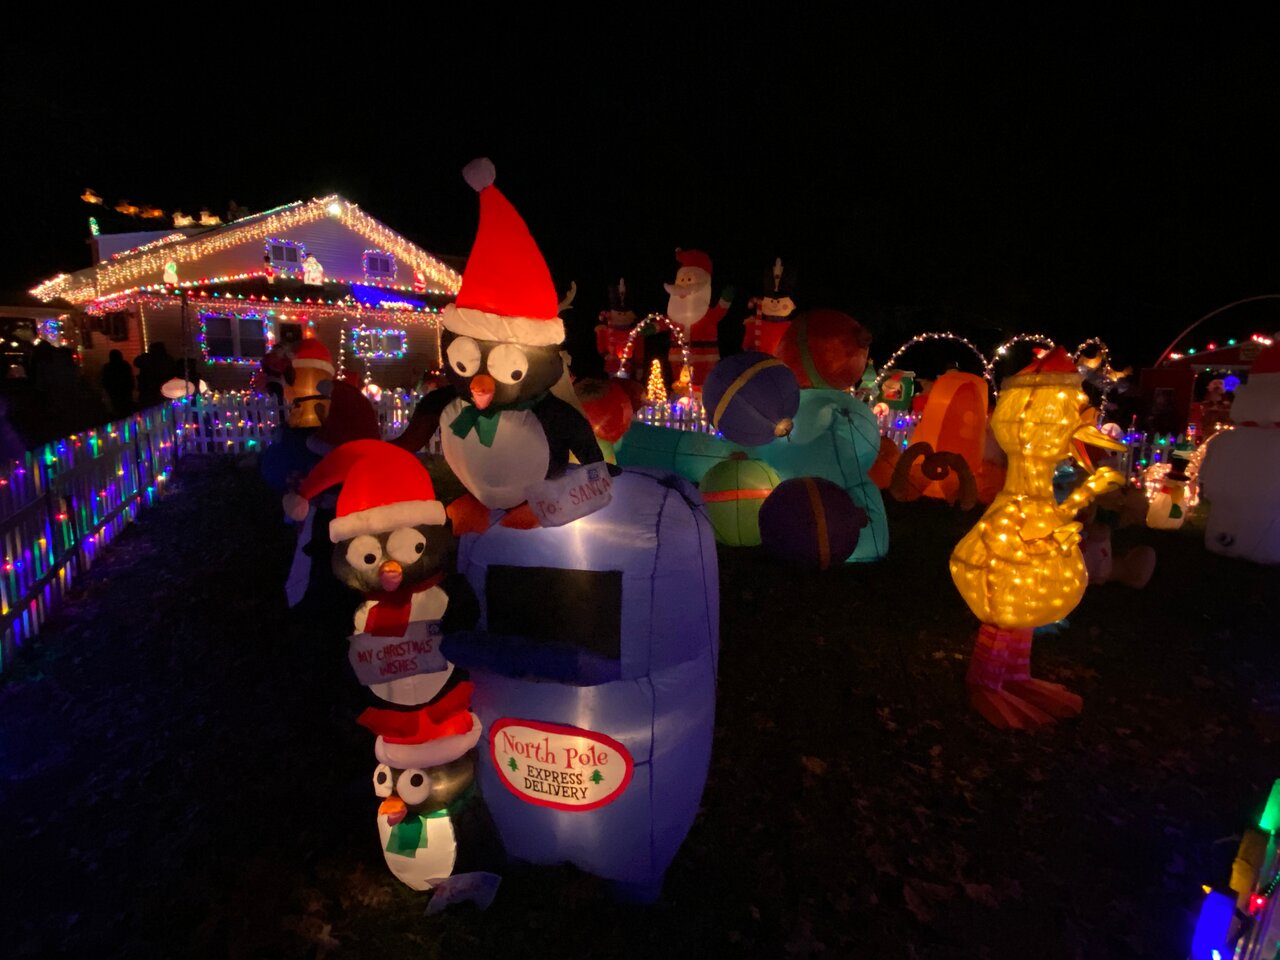 Top Of The Hill Christmas Lights Delaware 2021 Smith S Christmas Lights At Top Of The Hill Wilmington 2021 All You Need To Know Before You Go With Photos Tripadvisor